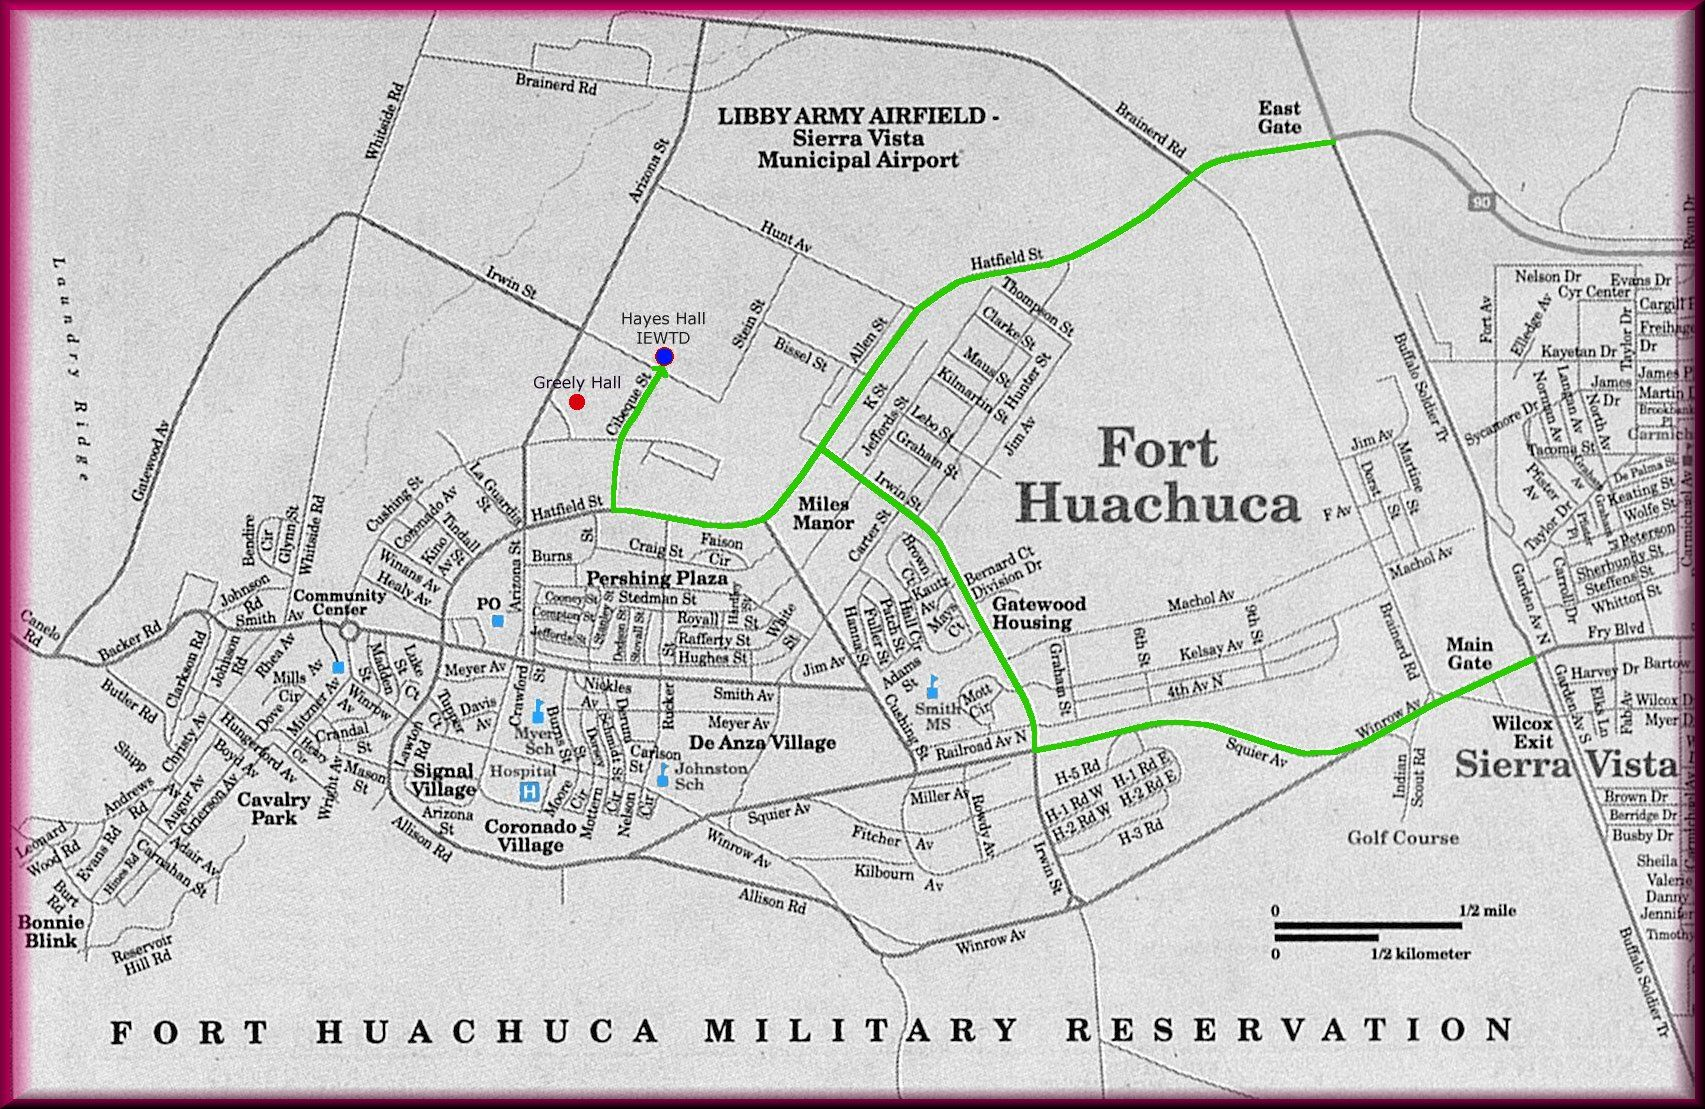 Pin By D Dunlap On Fort Huachuca Az Pinterest Sierra Vista